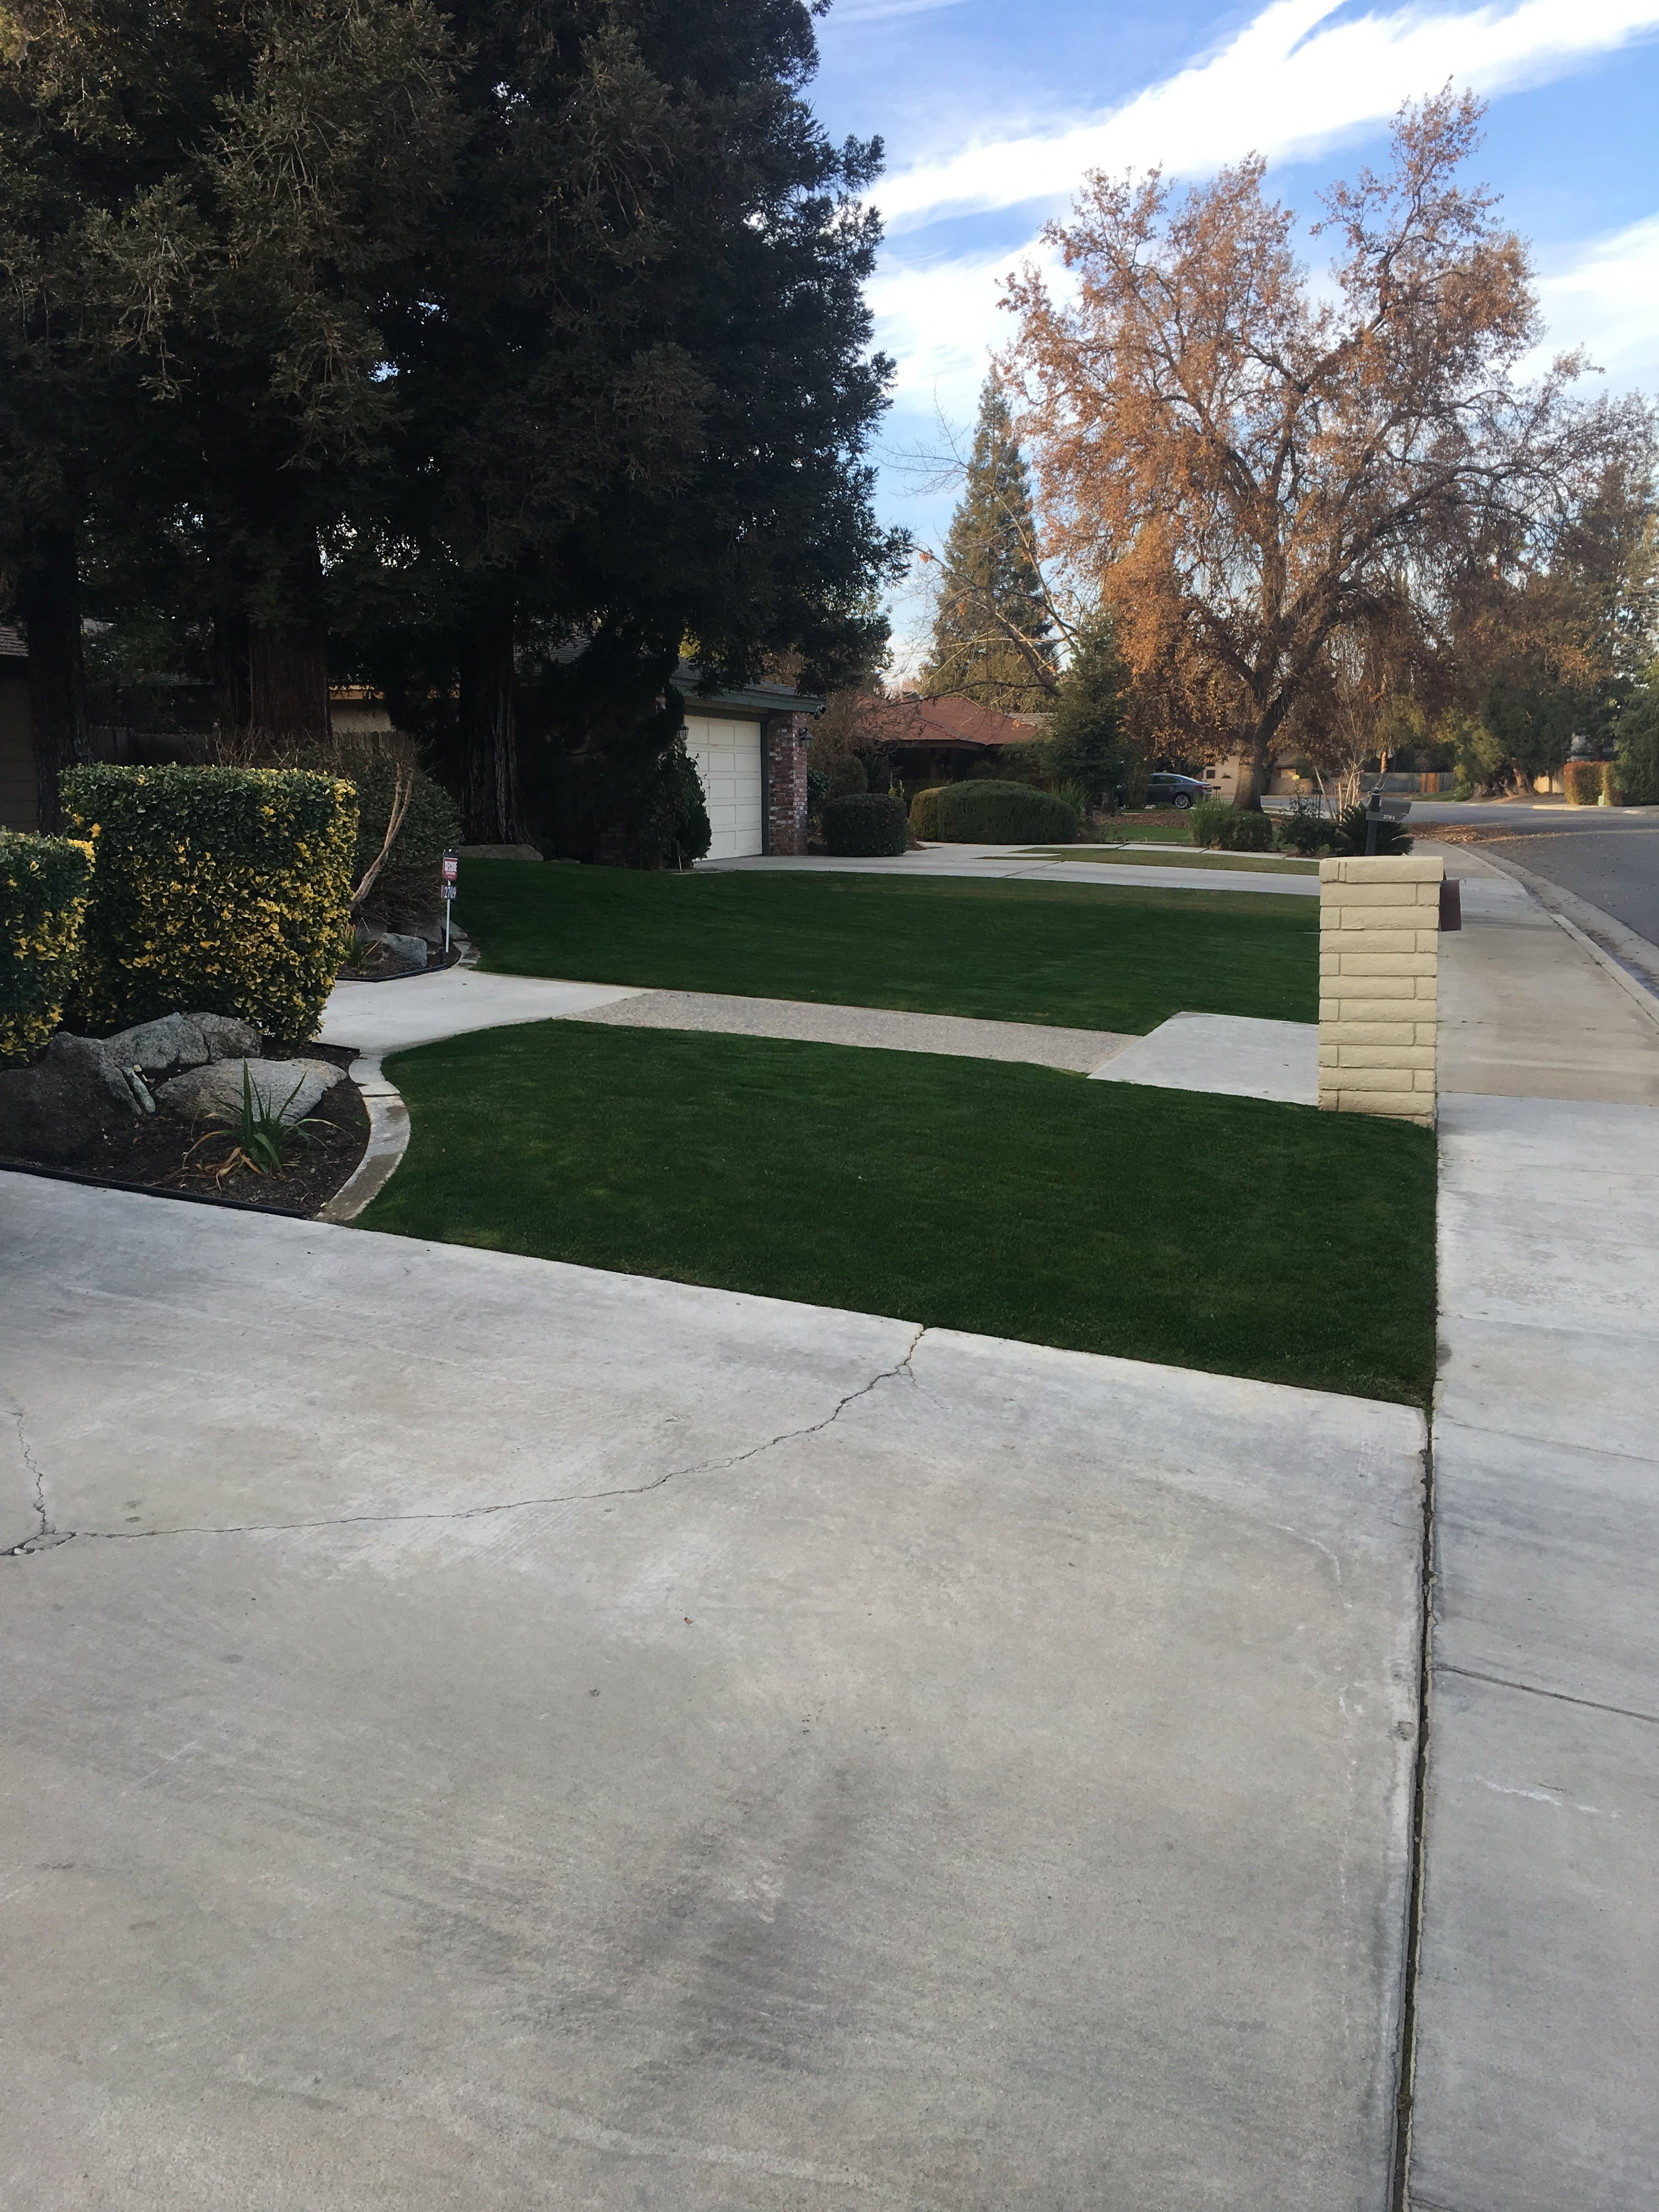 Yard mowing company in Bakersfield , CA, 93301